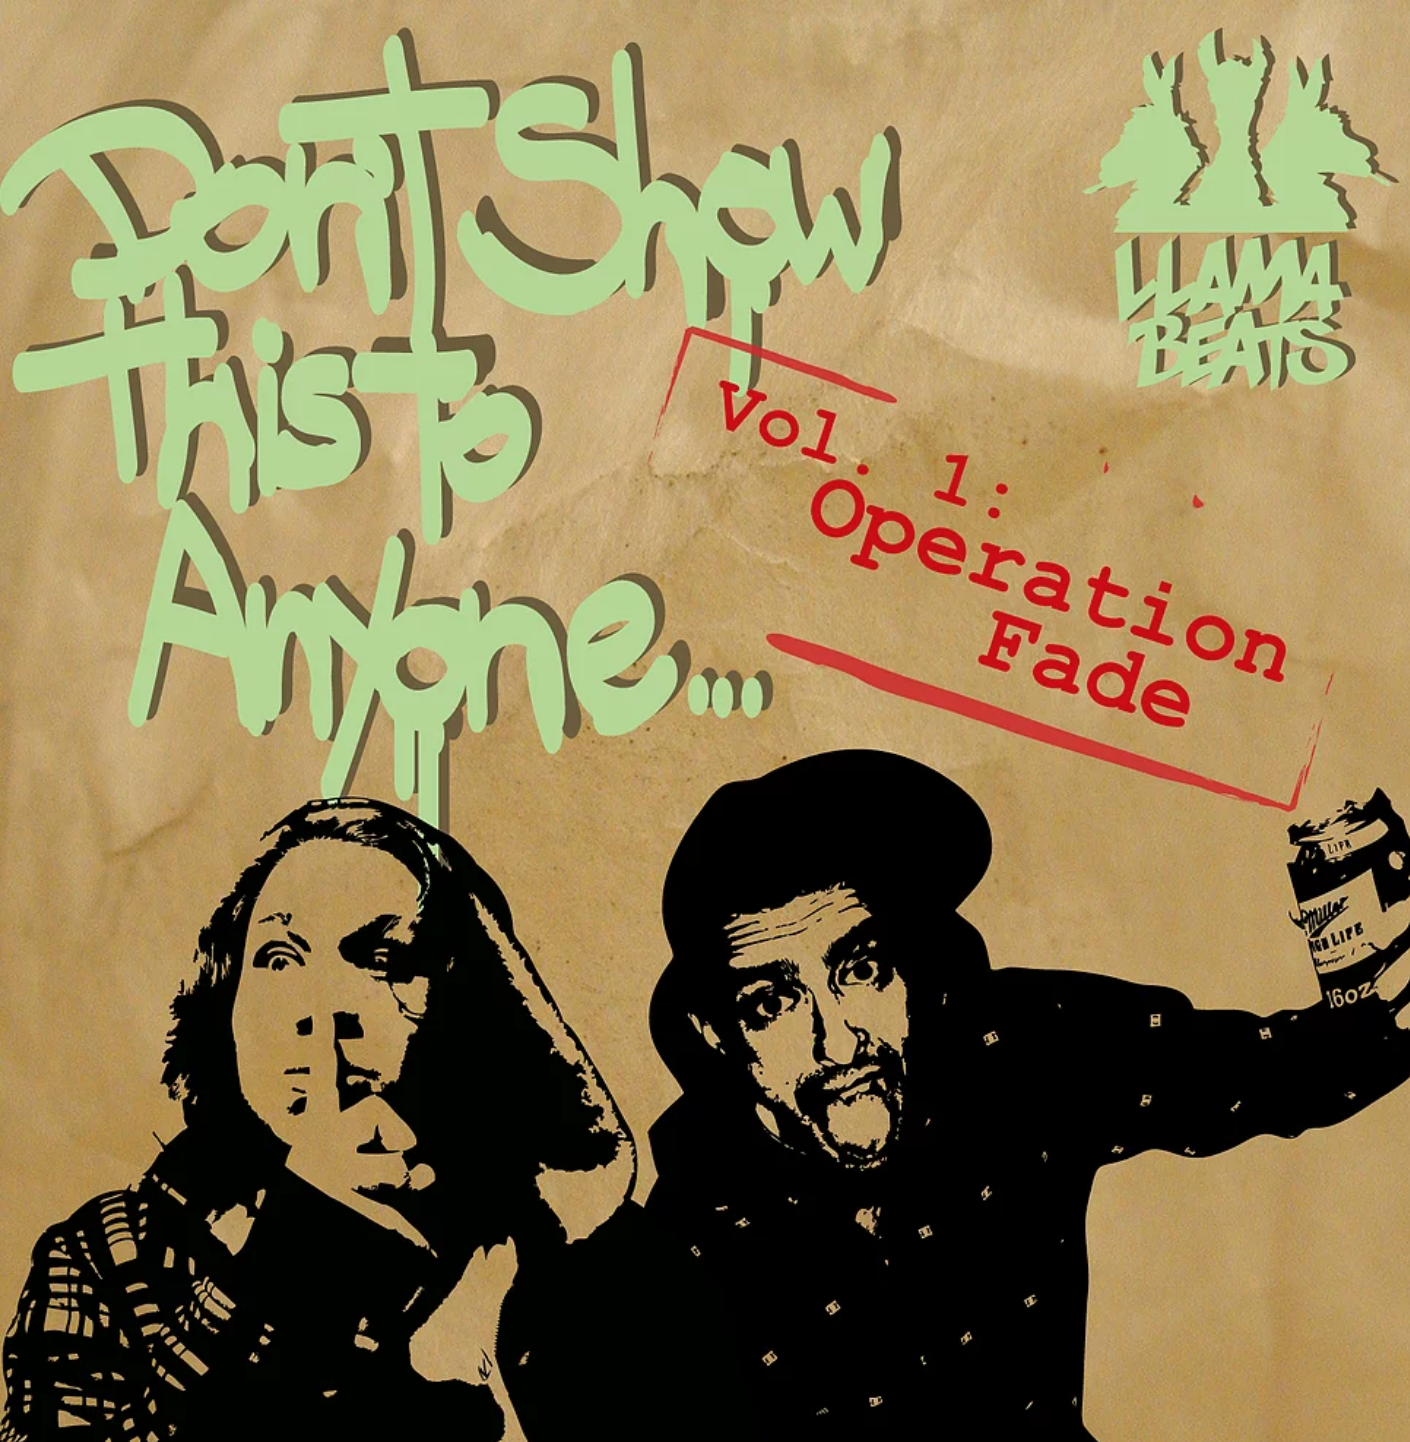 """""""Don't Show This To Anyone - Vol. 1: Operation Fade"""" by Llamabeats (2010) -  Stream & Download"""